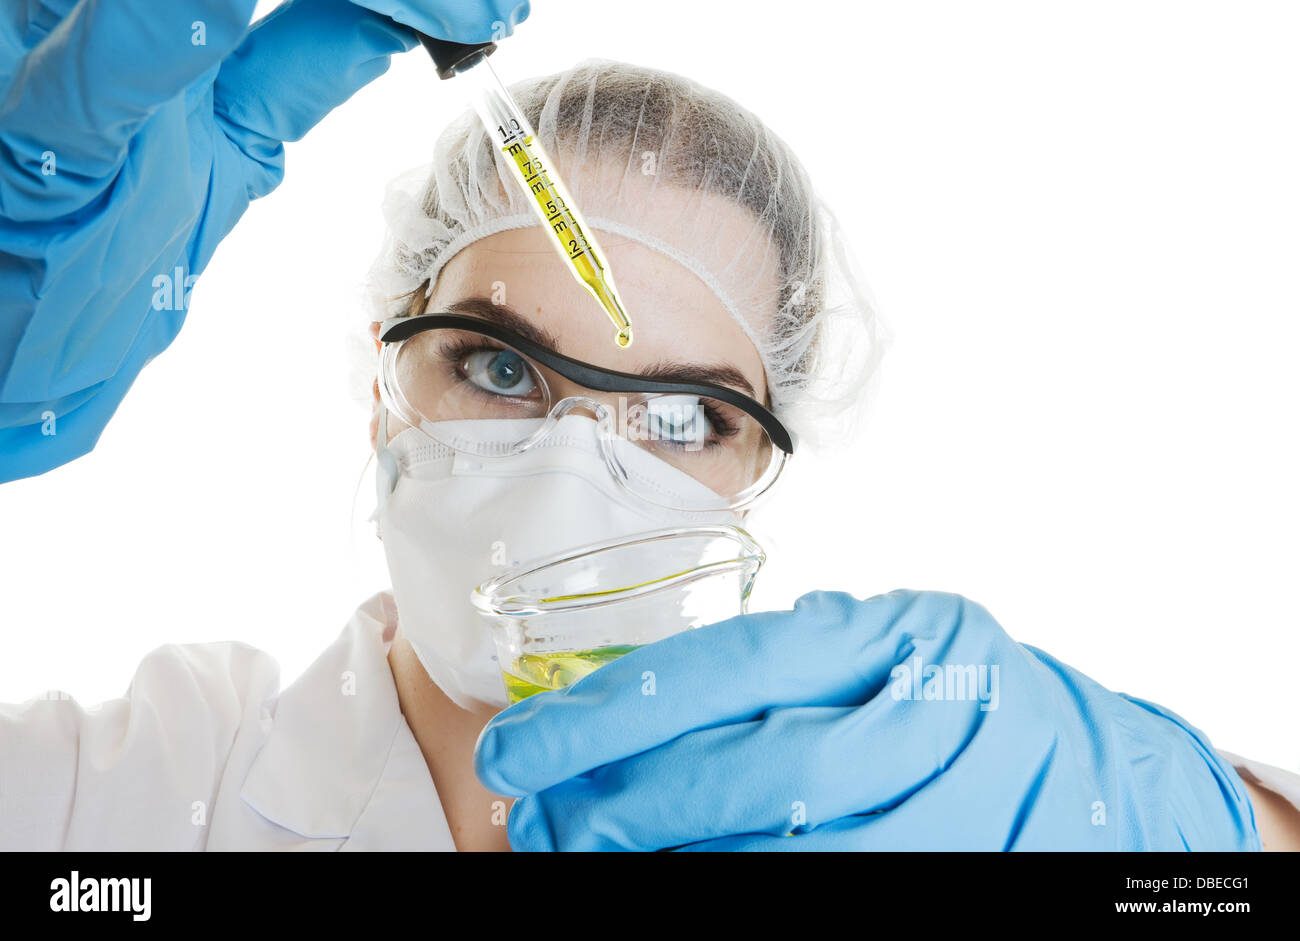 Medical worker conducting a routine medical test. Shot on a white background - Stock Image